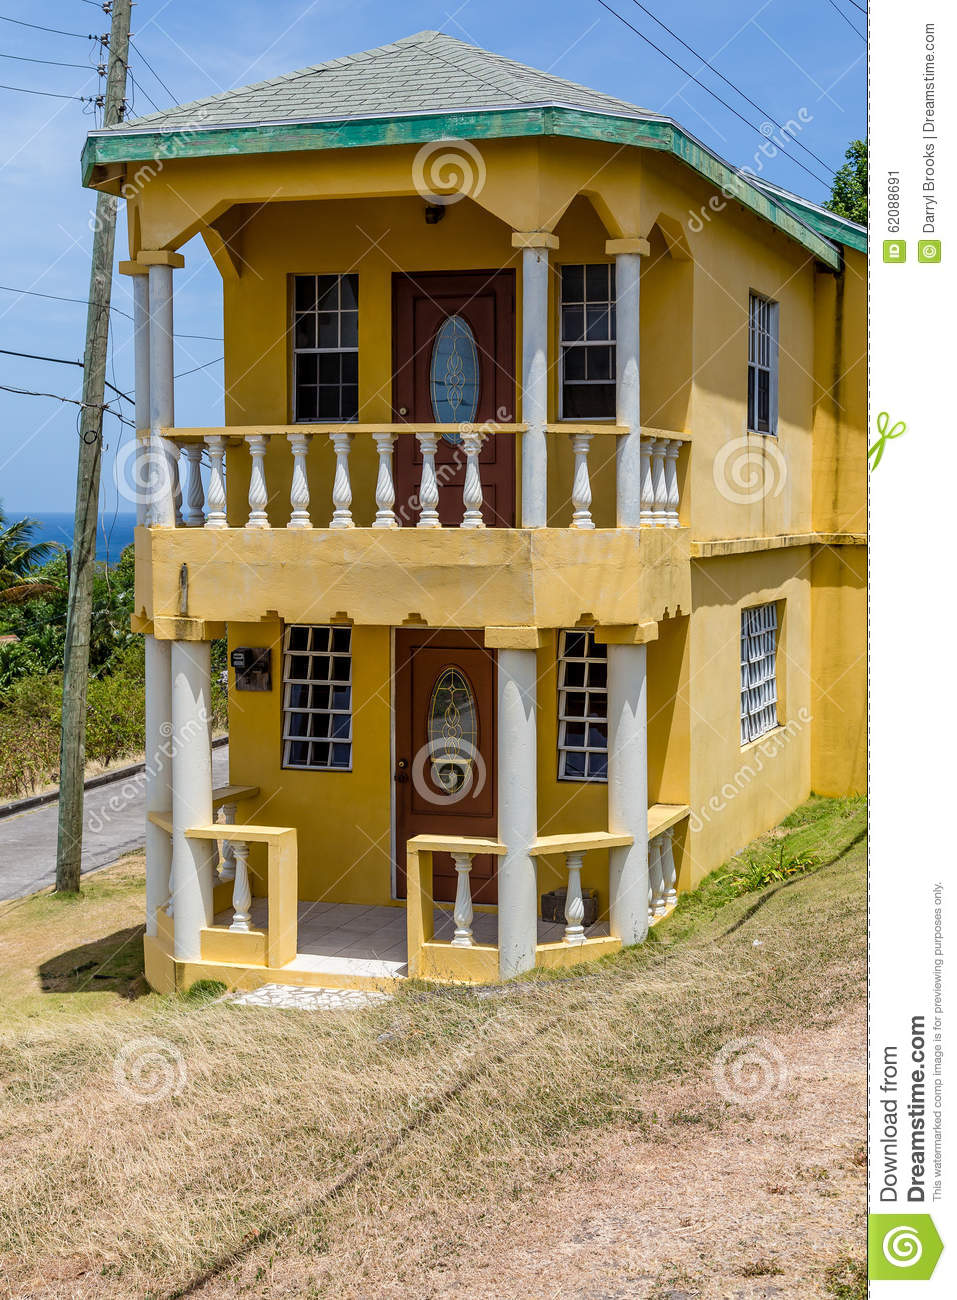 Small Two Story House Design: Small Two Story Stucco Home Stock Image